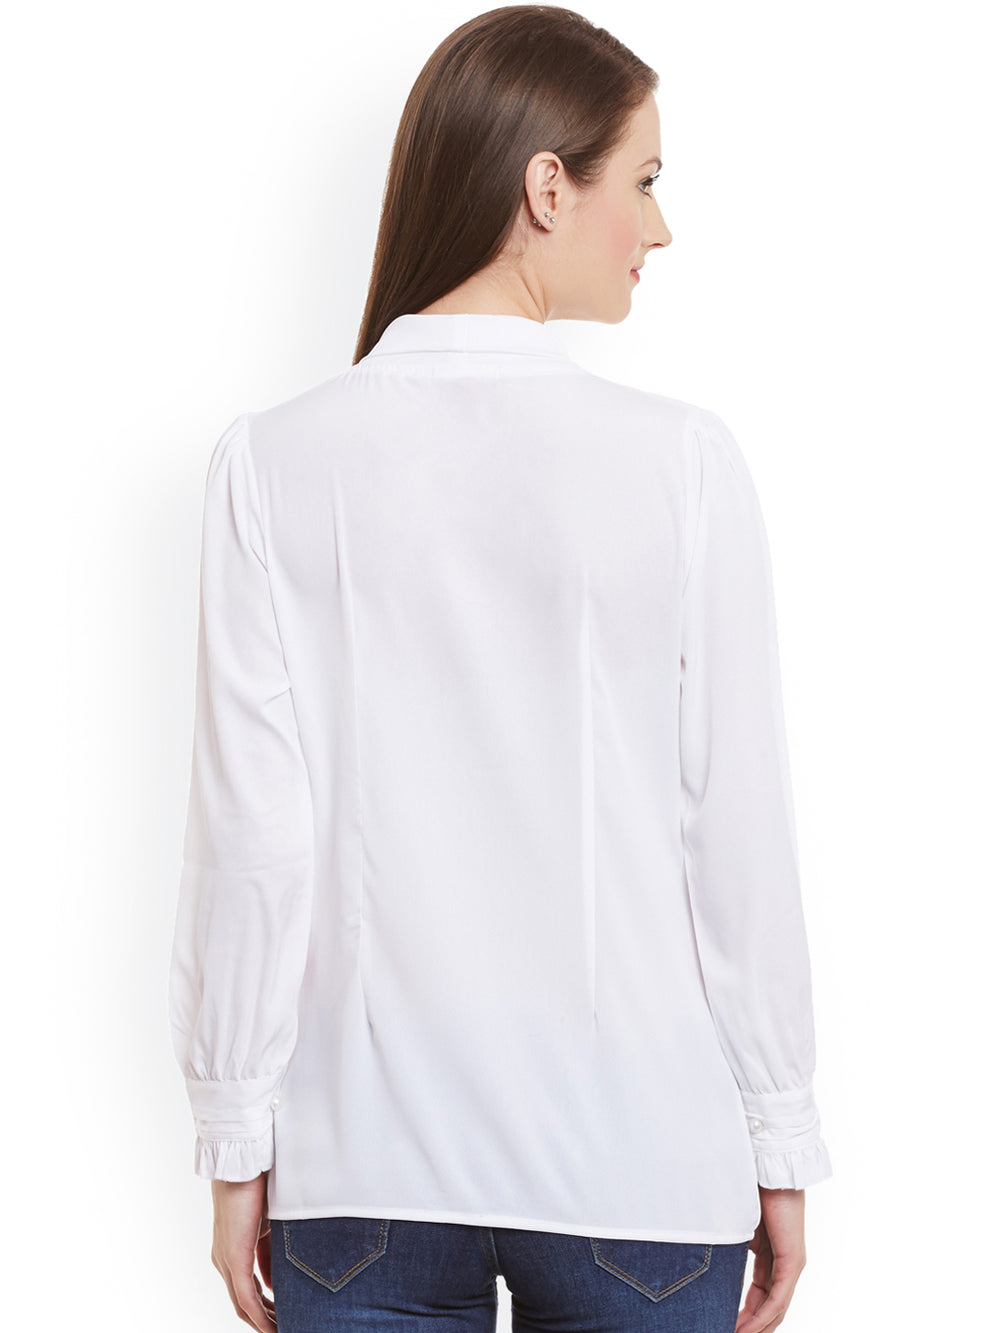 eyelet Women White Solid Shirt Style Top